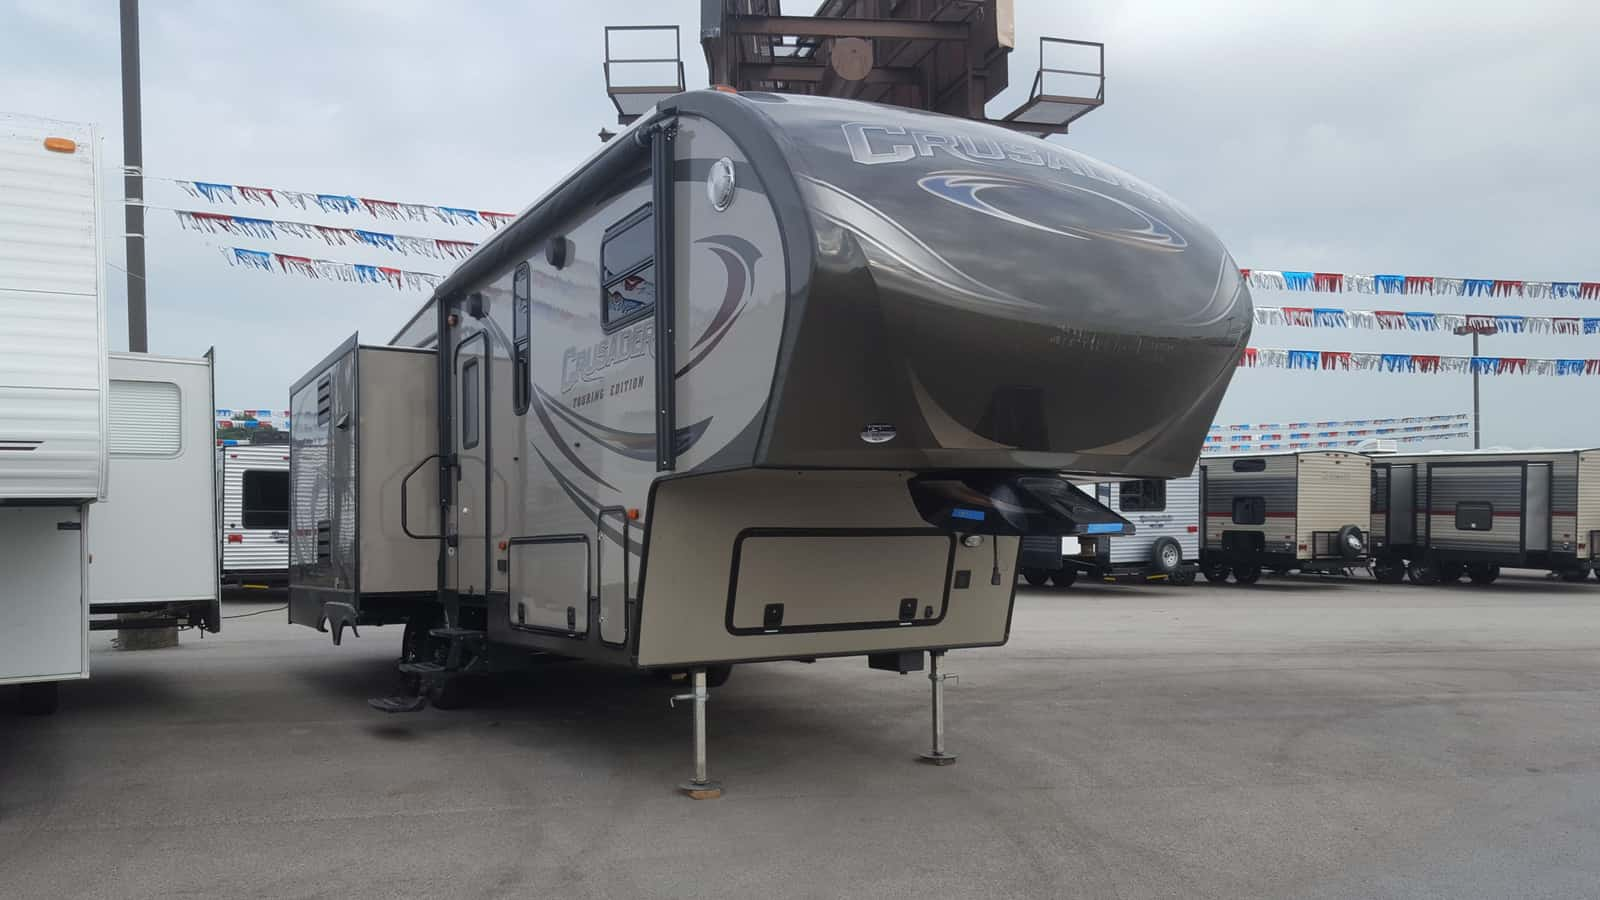 USED 2014 Prime Time CRUSADER 295RST - American RV